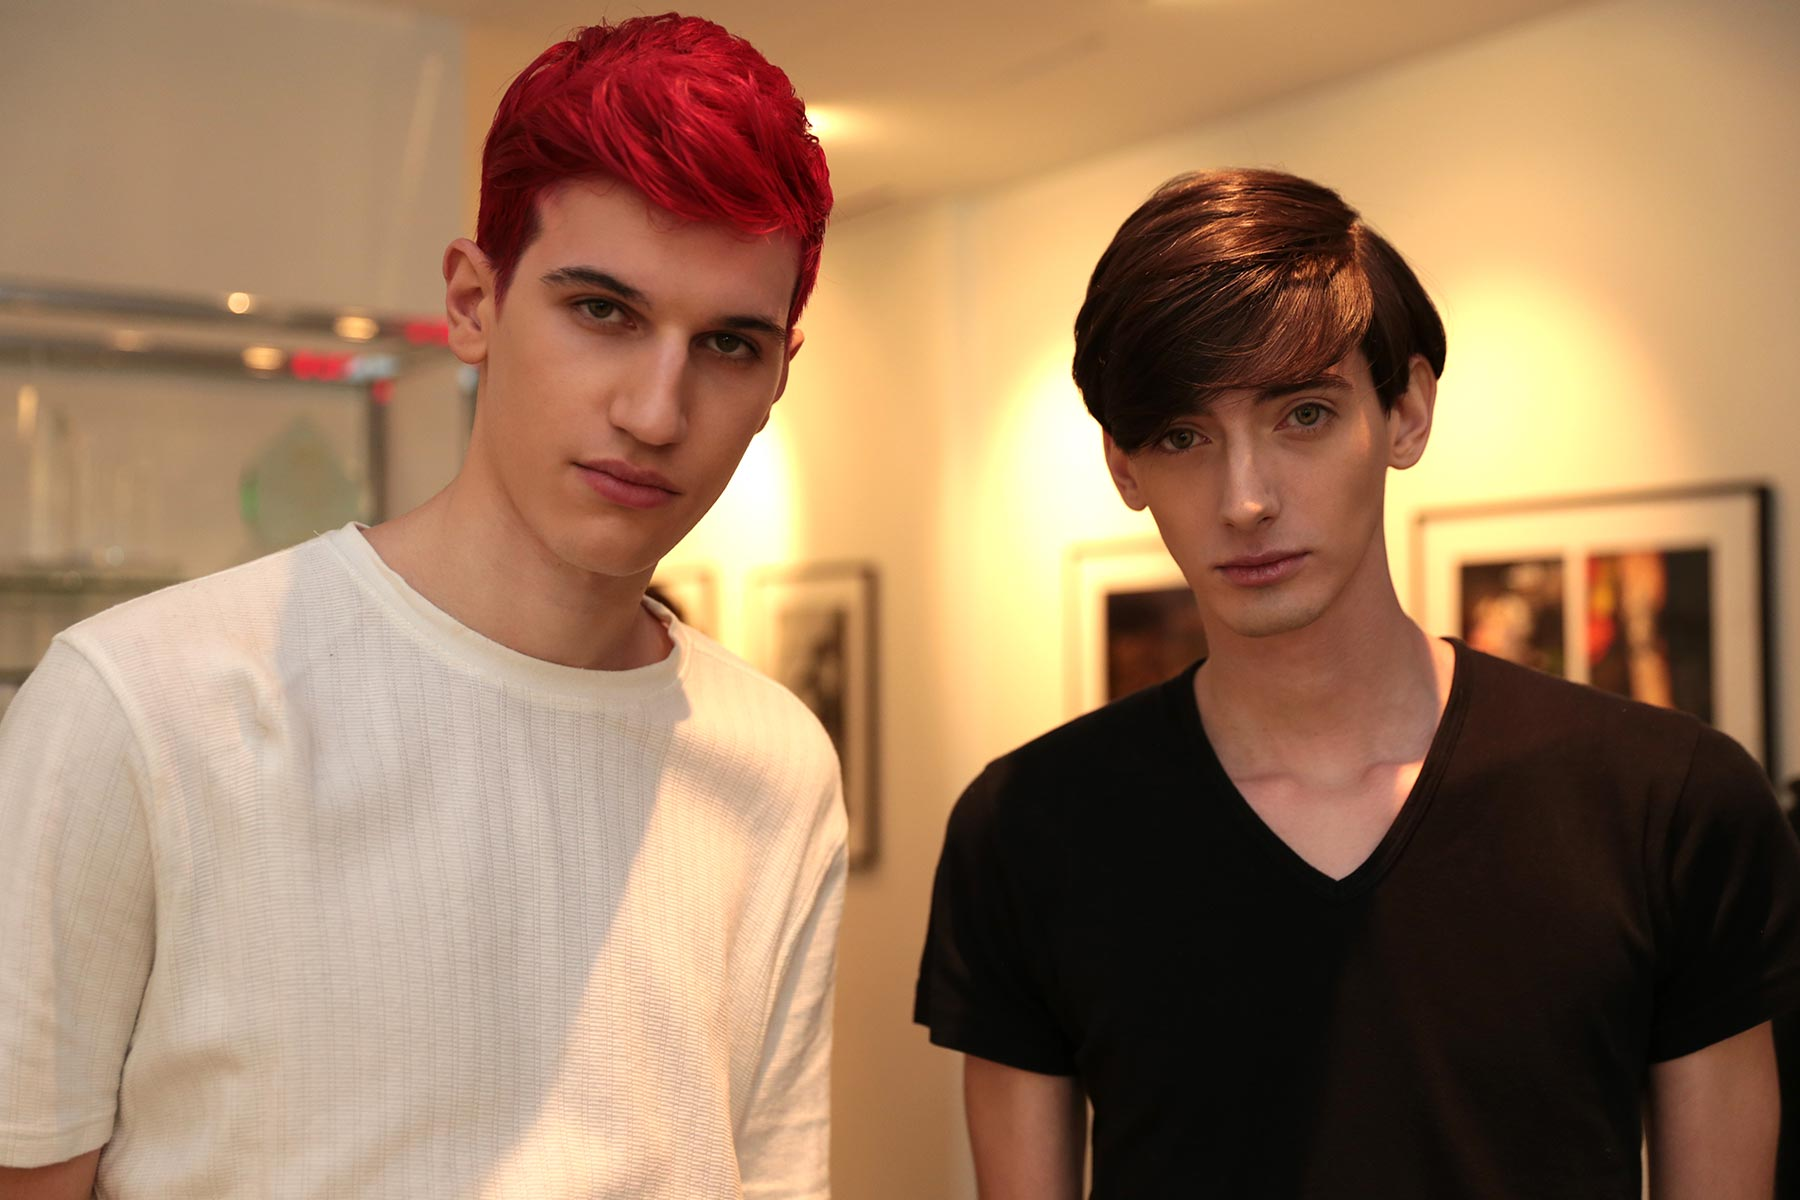 Behind the scenes at RICARDO SECO S/S 2015 New York Fashion Week